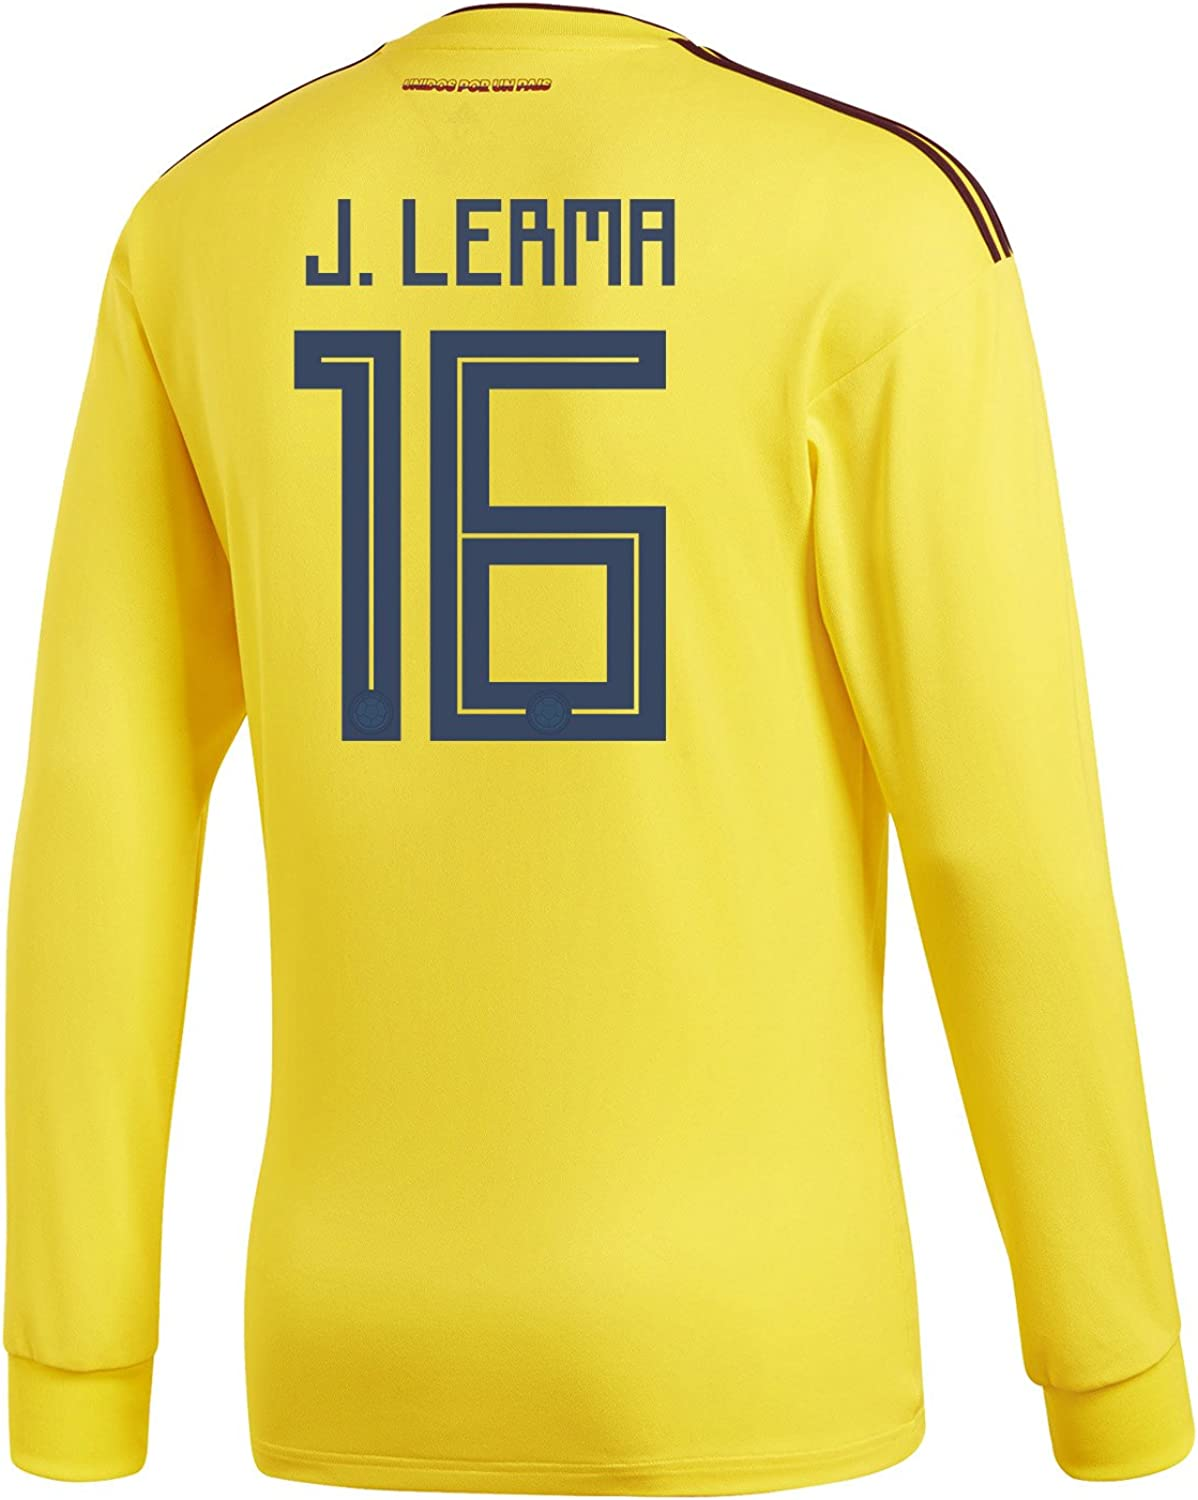 Adidas J. Lerma  16 Colombia Home Men's Long Sleeve Soccer Jersey World Cup 2018